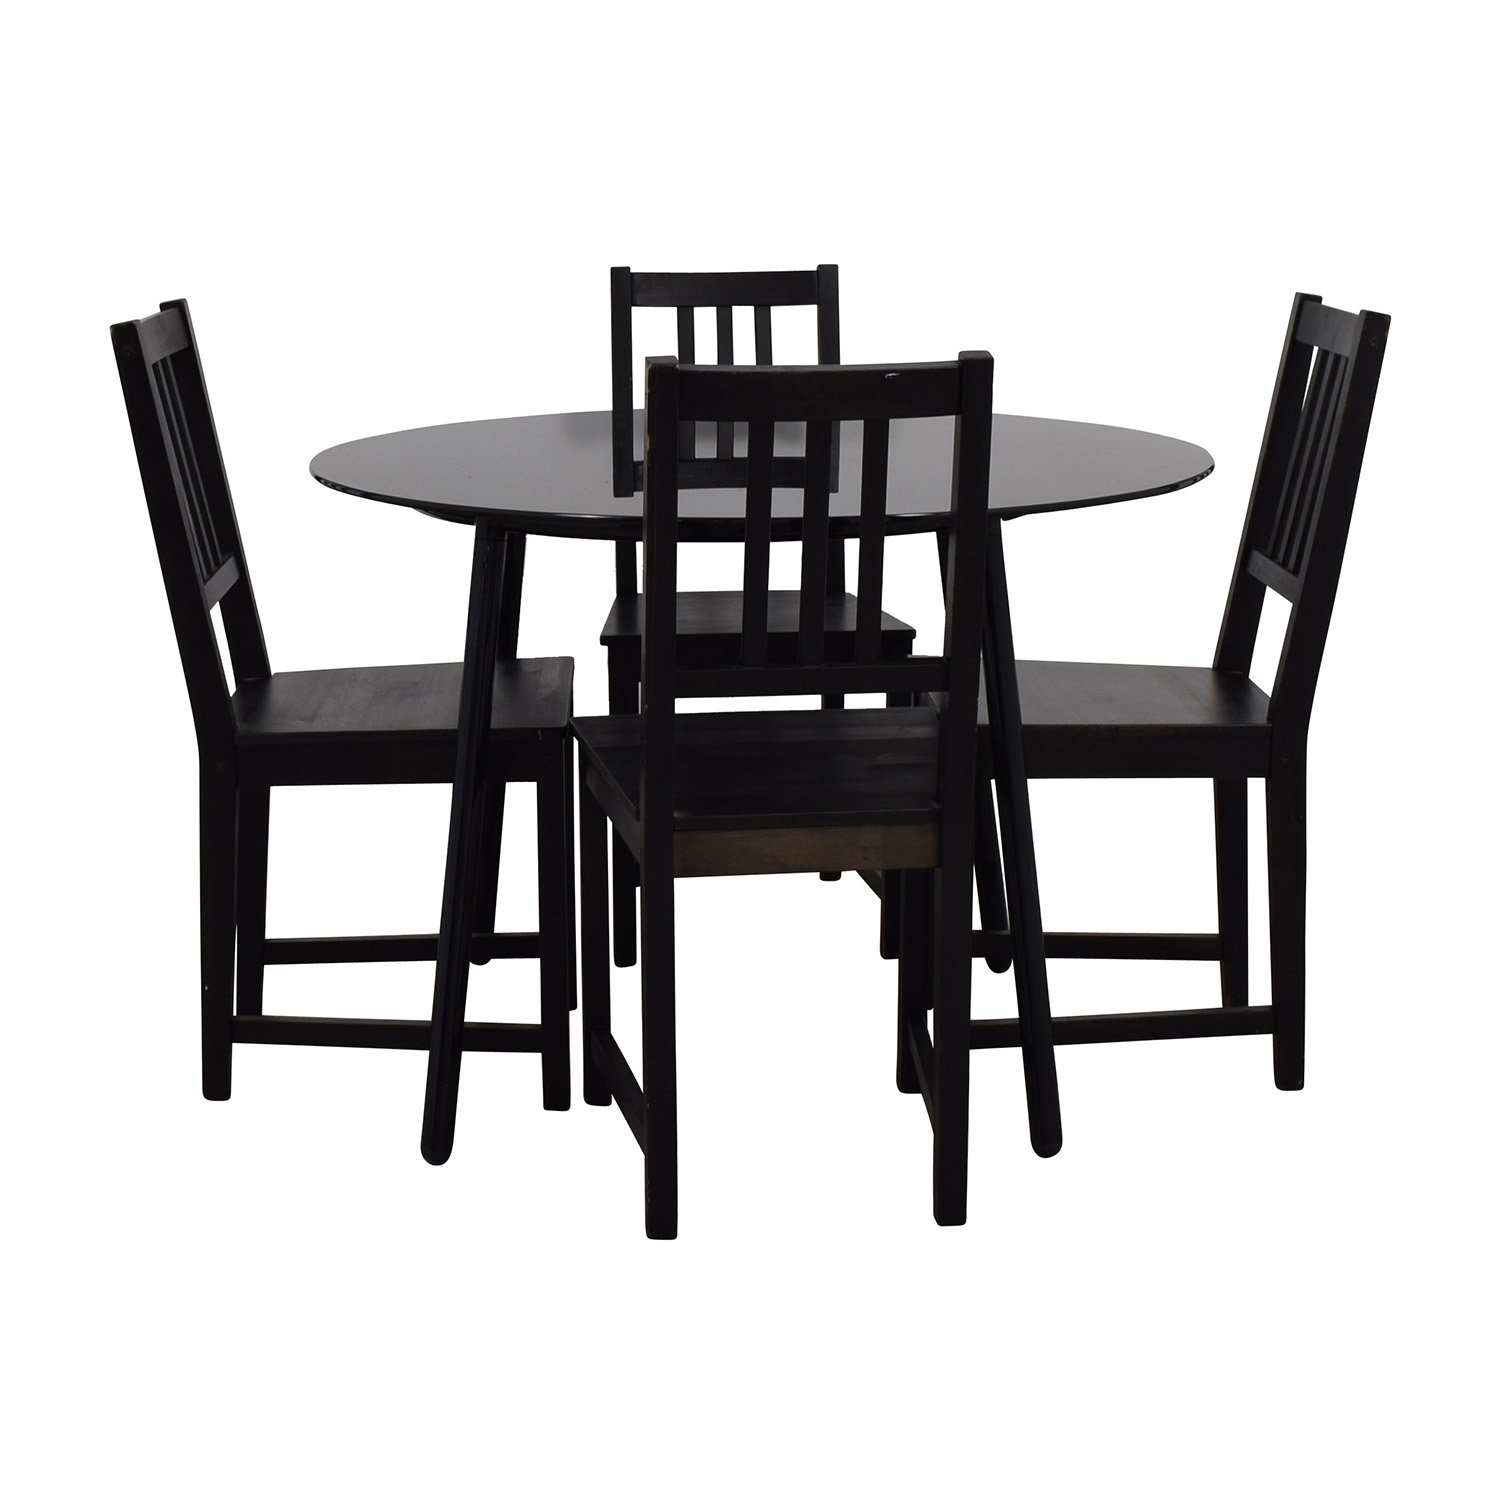 Ikea Dining Room Table And Chairs: Dining Sets: Used Dining Sets For Sale